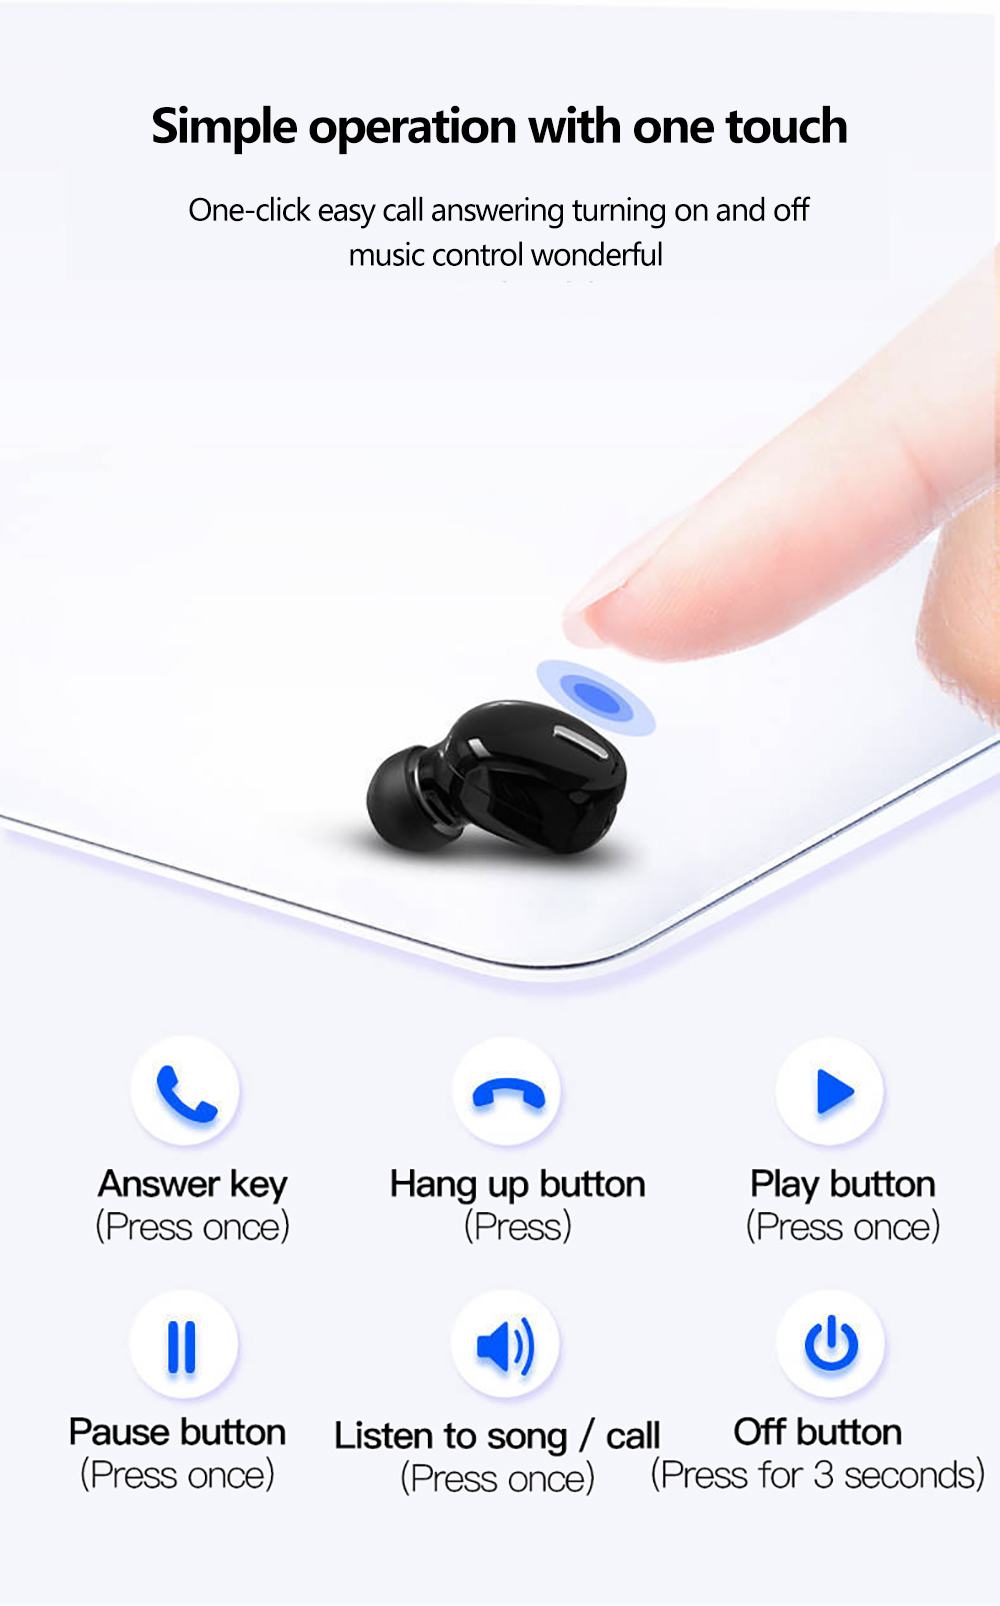 H214103c2bd3c4faba1f359e0998a58f55 - Mini In-Ear 5.0 Bluetooth Earphone HiFi Wireless Headset With Mic Sports Earbuds Handsfree Stereo Sound Earphones for all phones